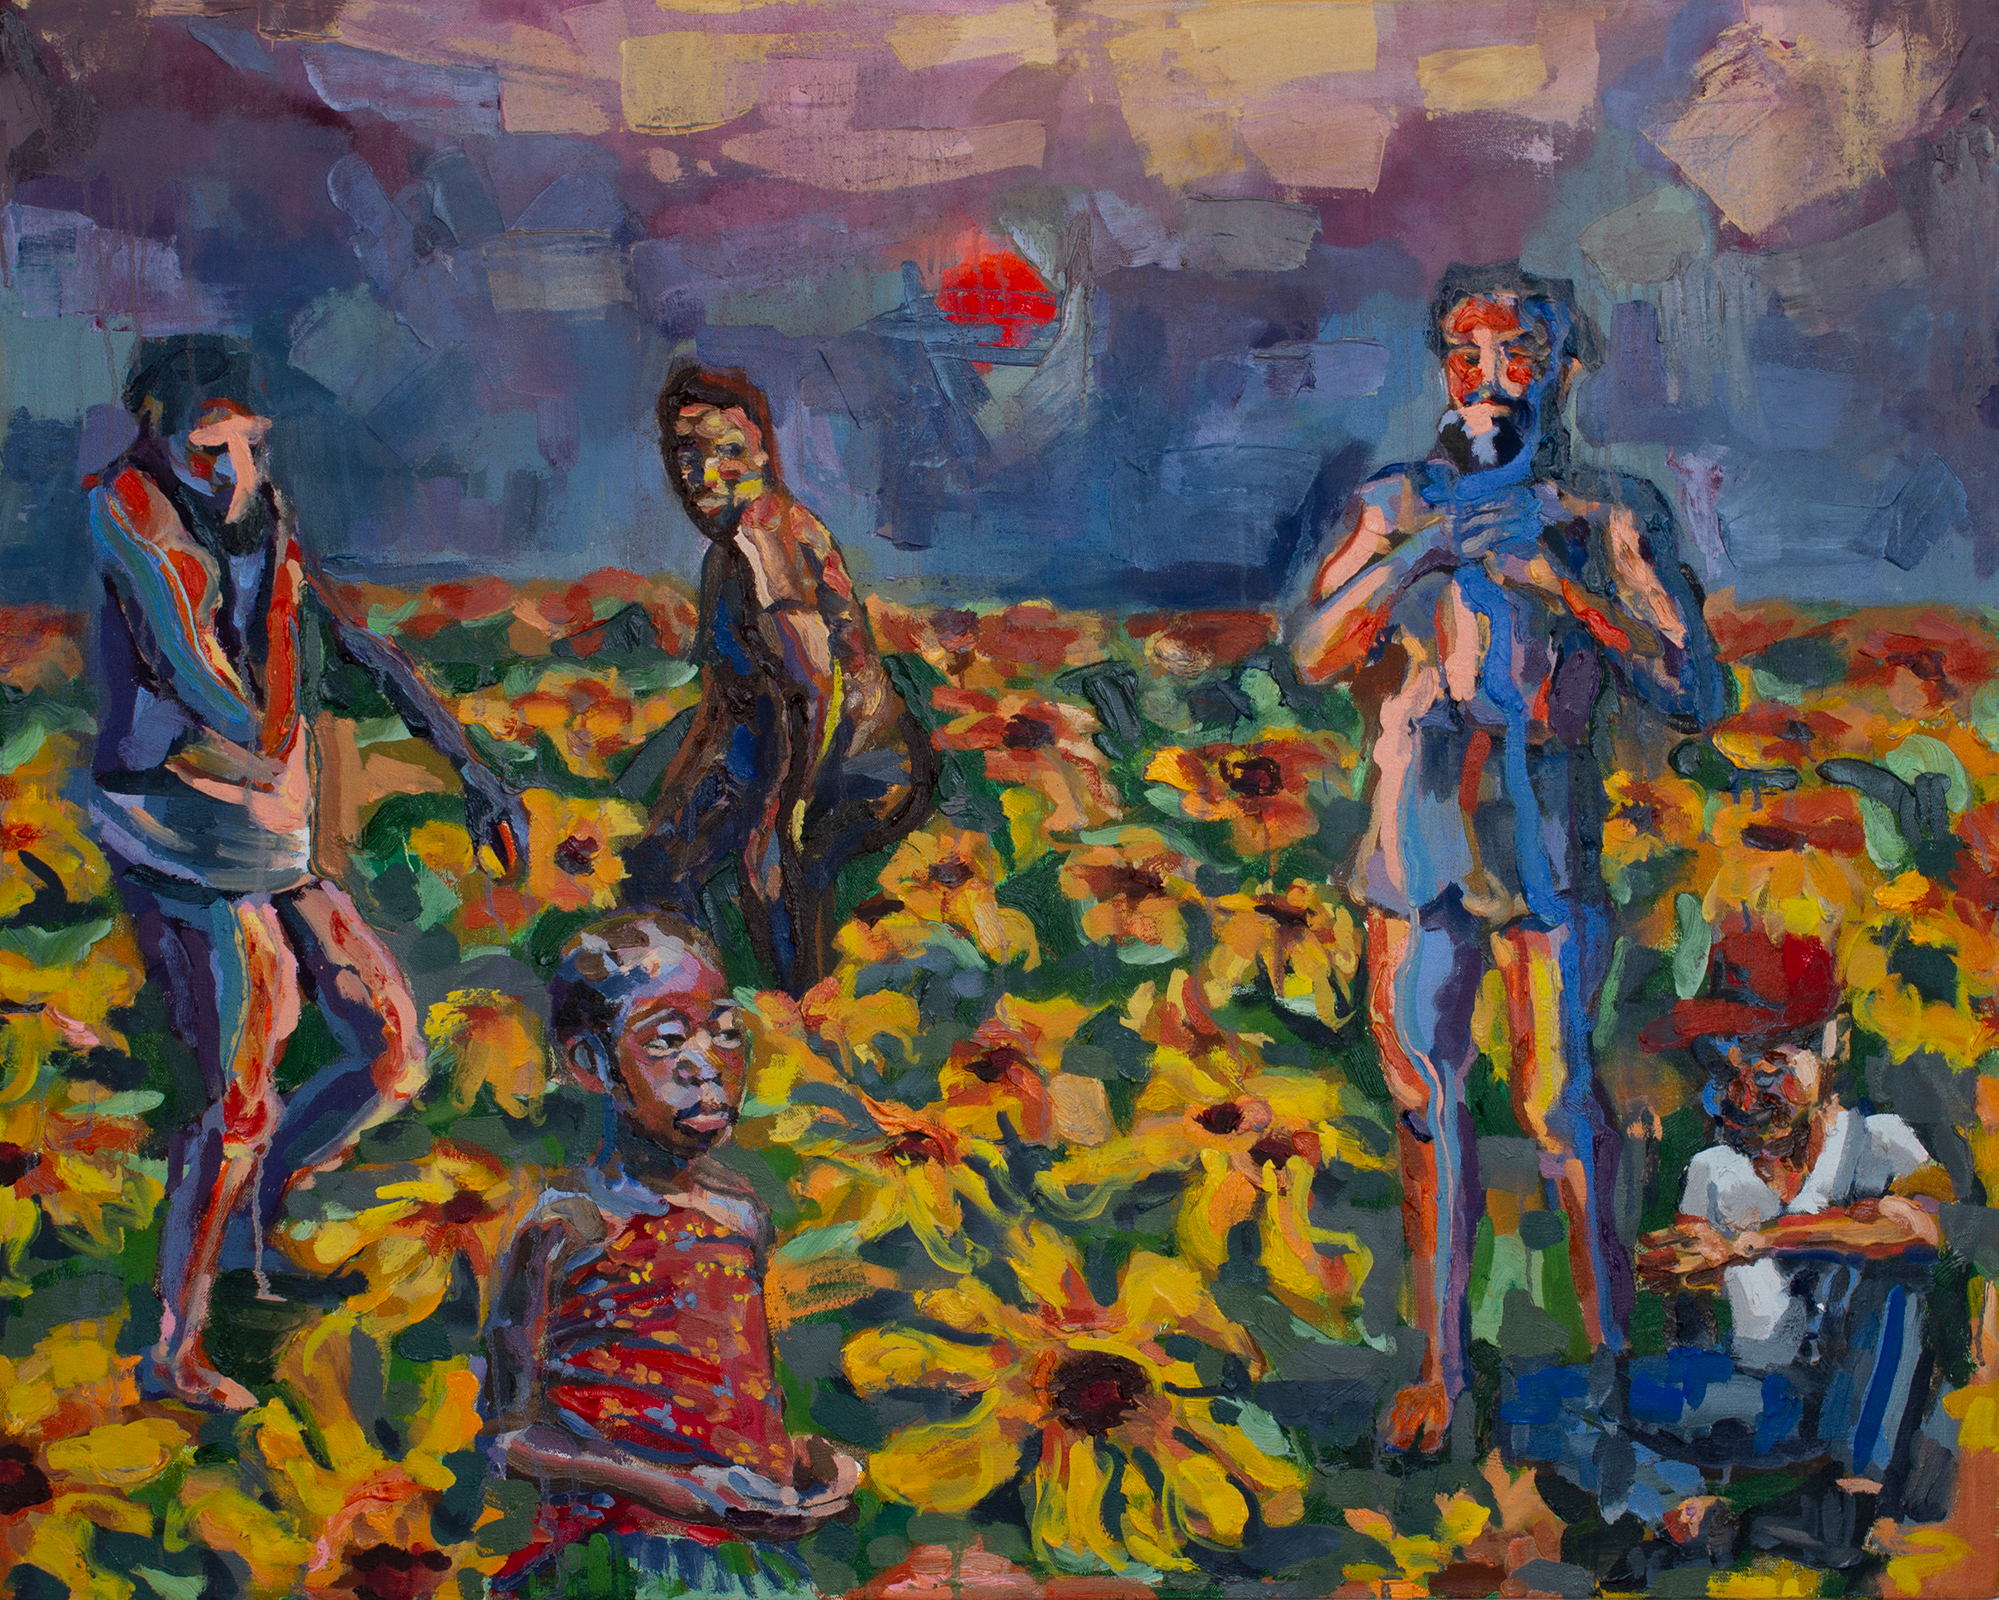 Sunflowers  (2018)  32 x 40 inches  Oil on Canvas